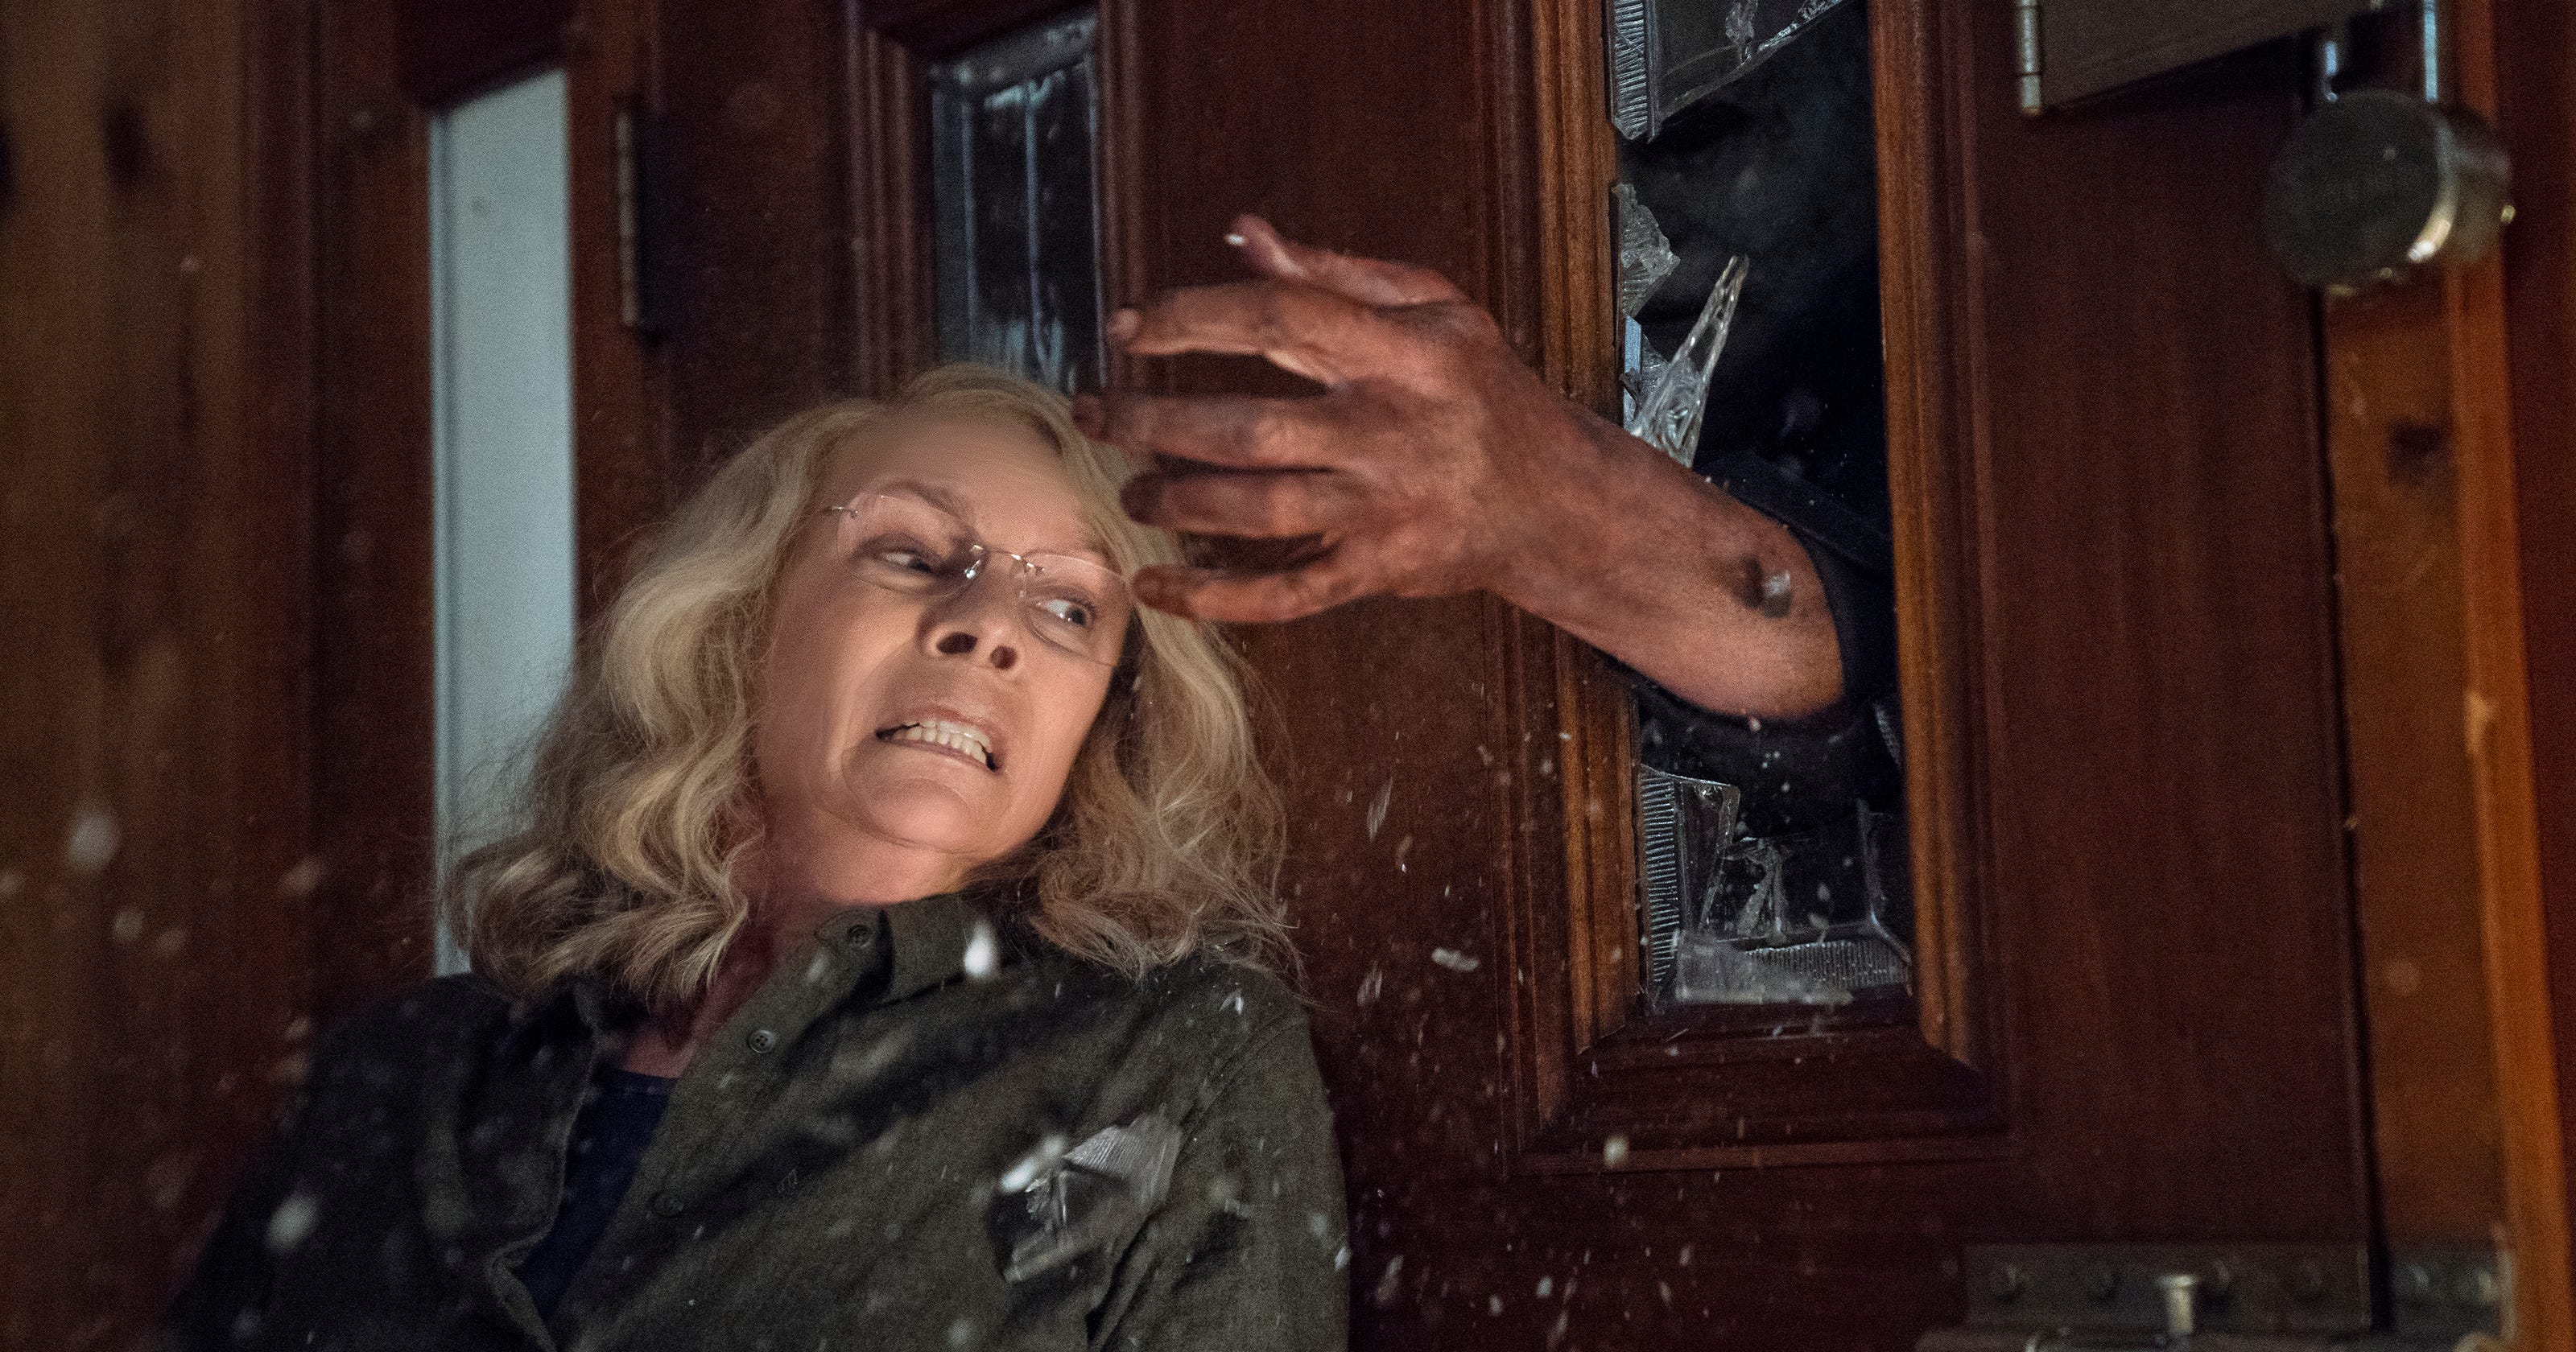 TIFF: Critics rave over 'Halloween,' calling it the best film since the original